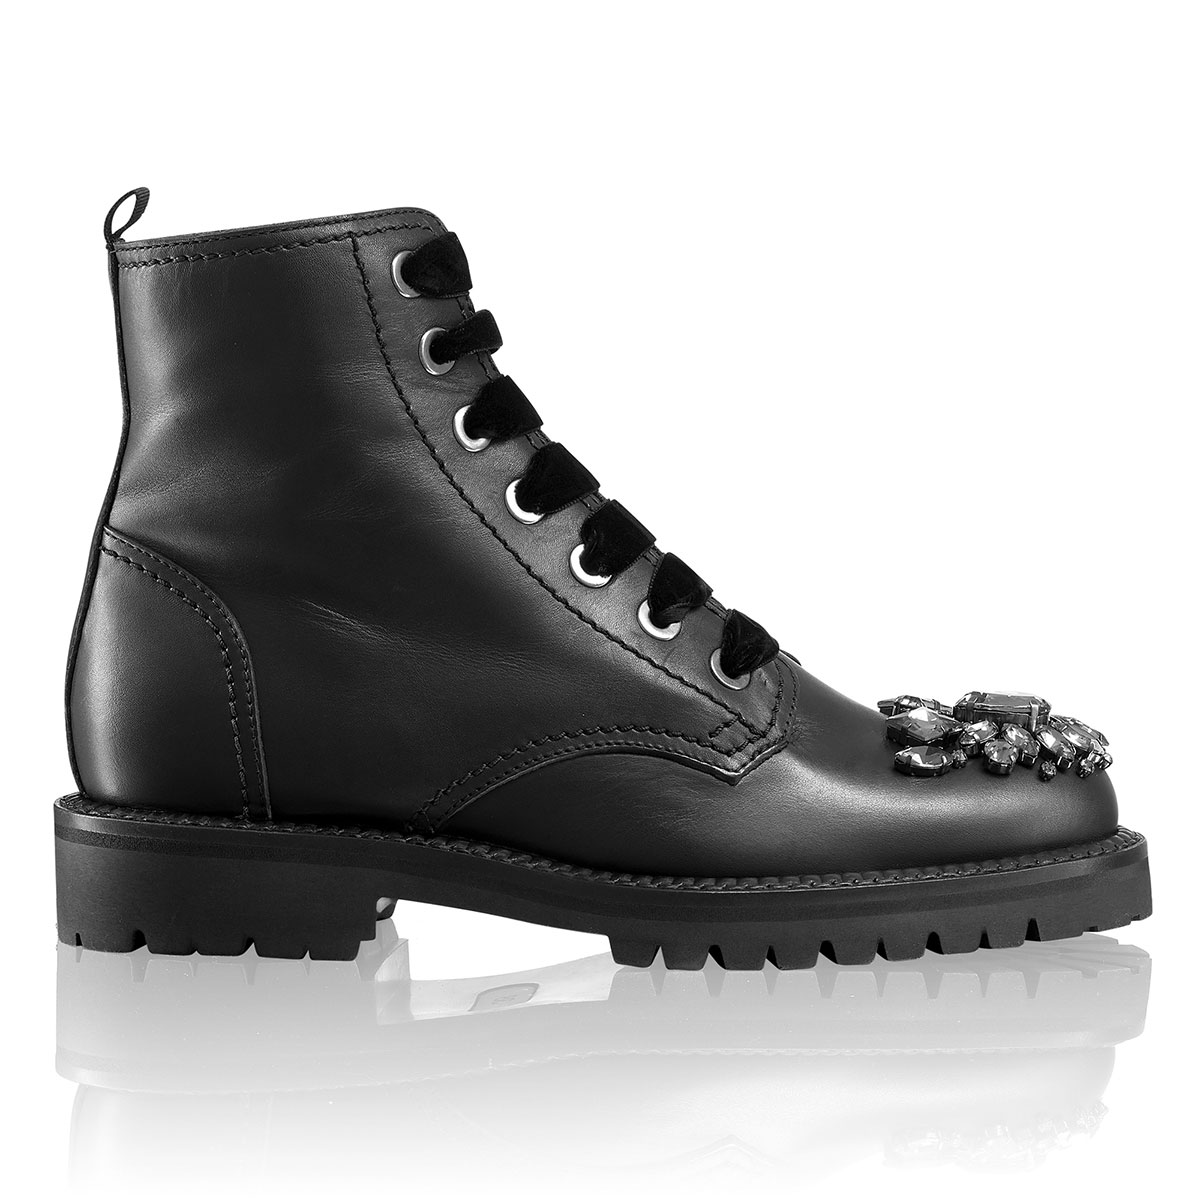 Russell and Bromley RISE+SHINE Jewel Toe Military Boot